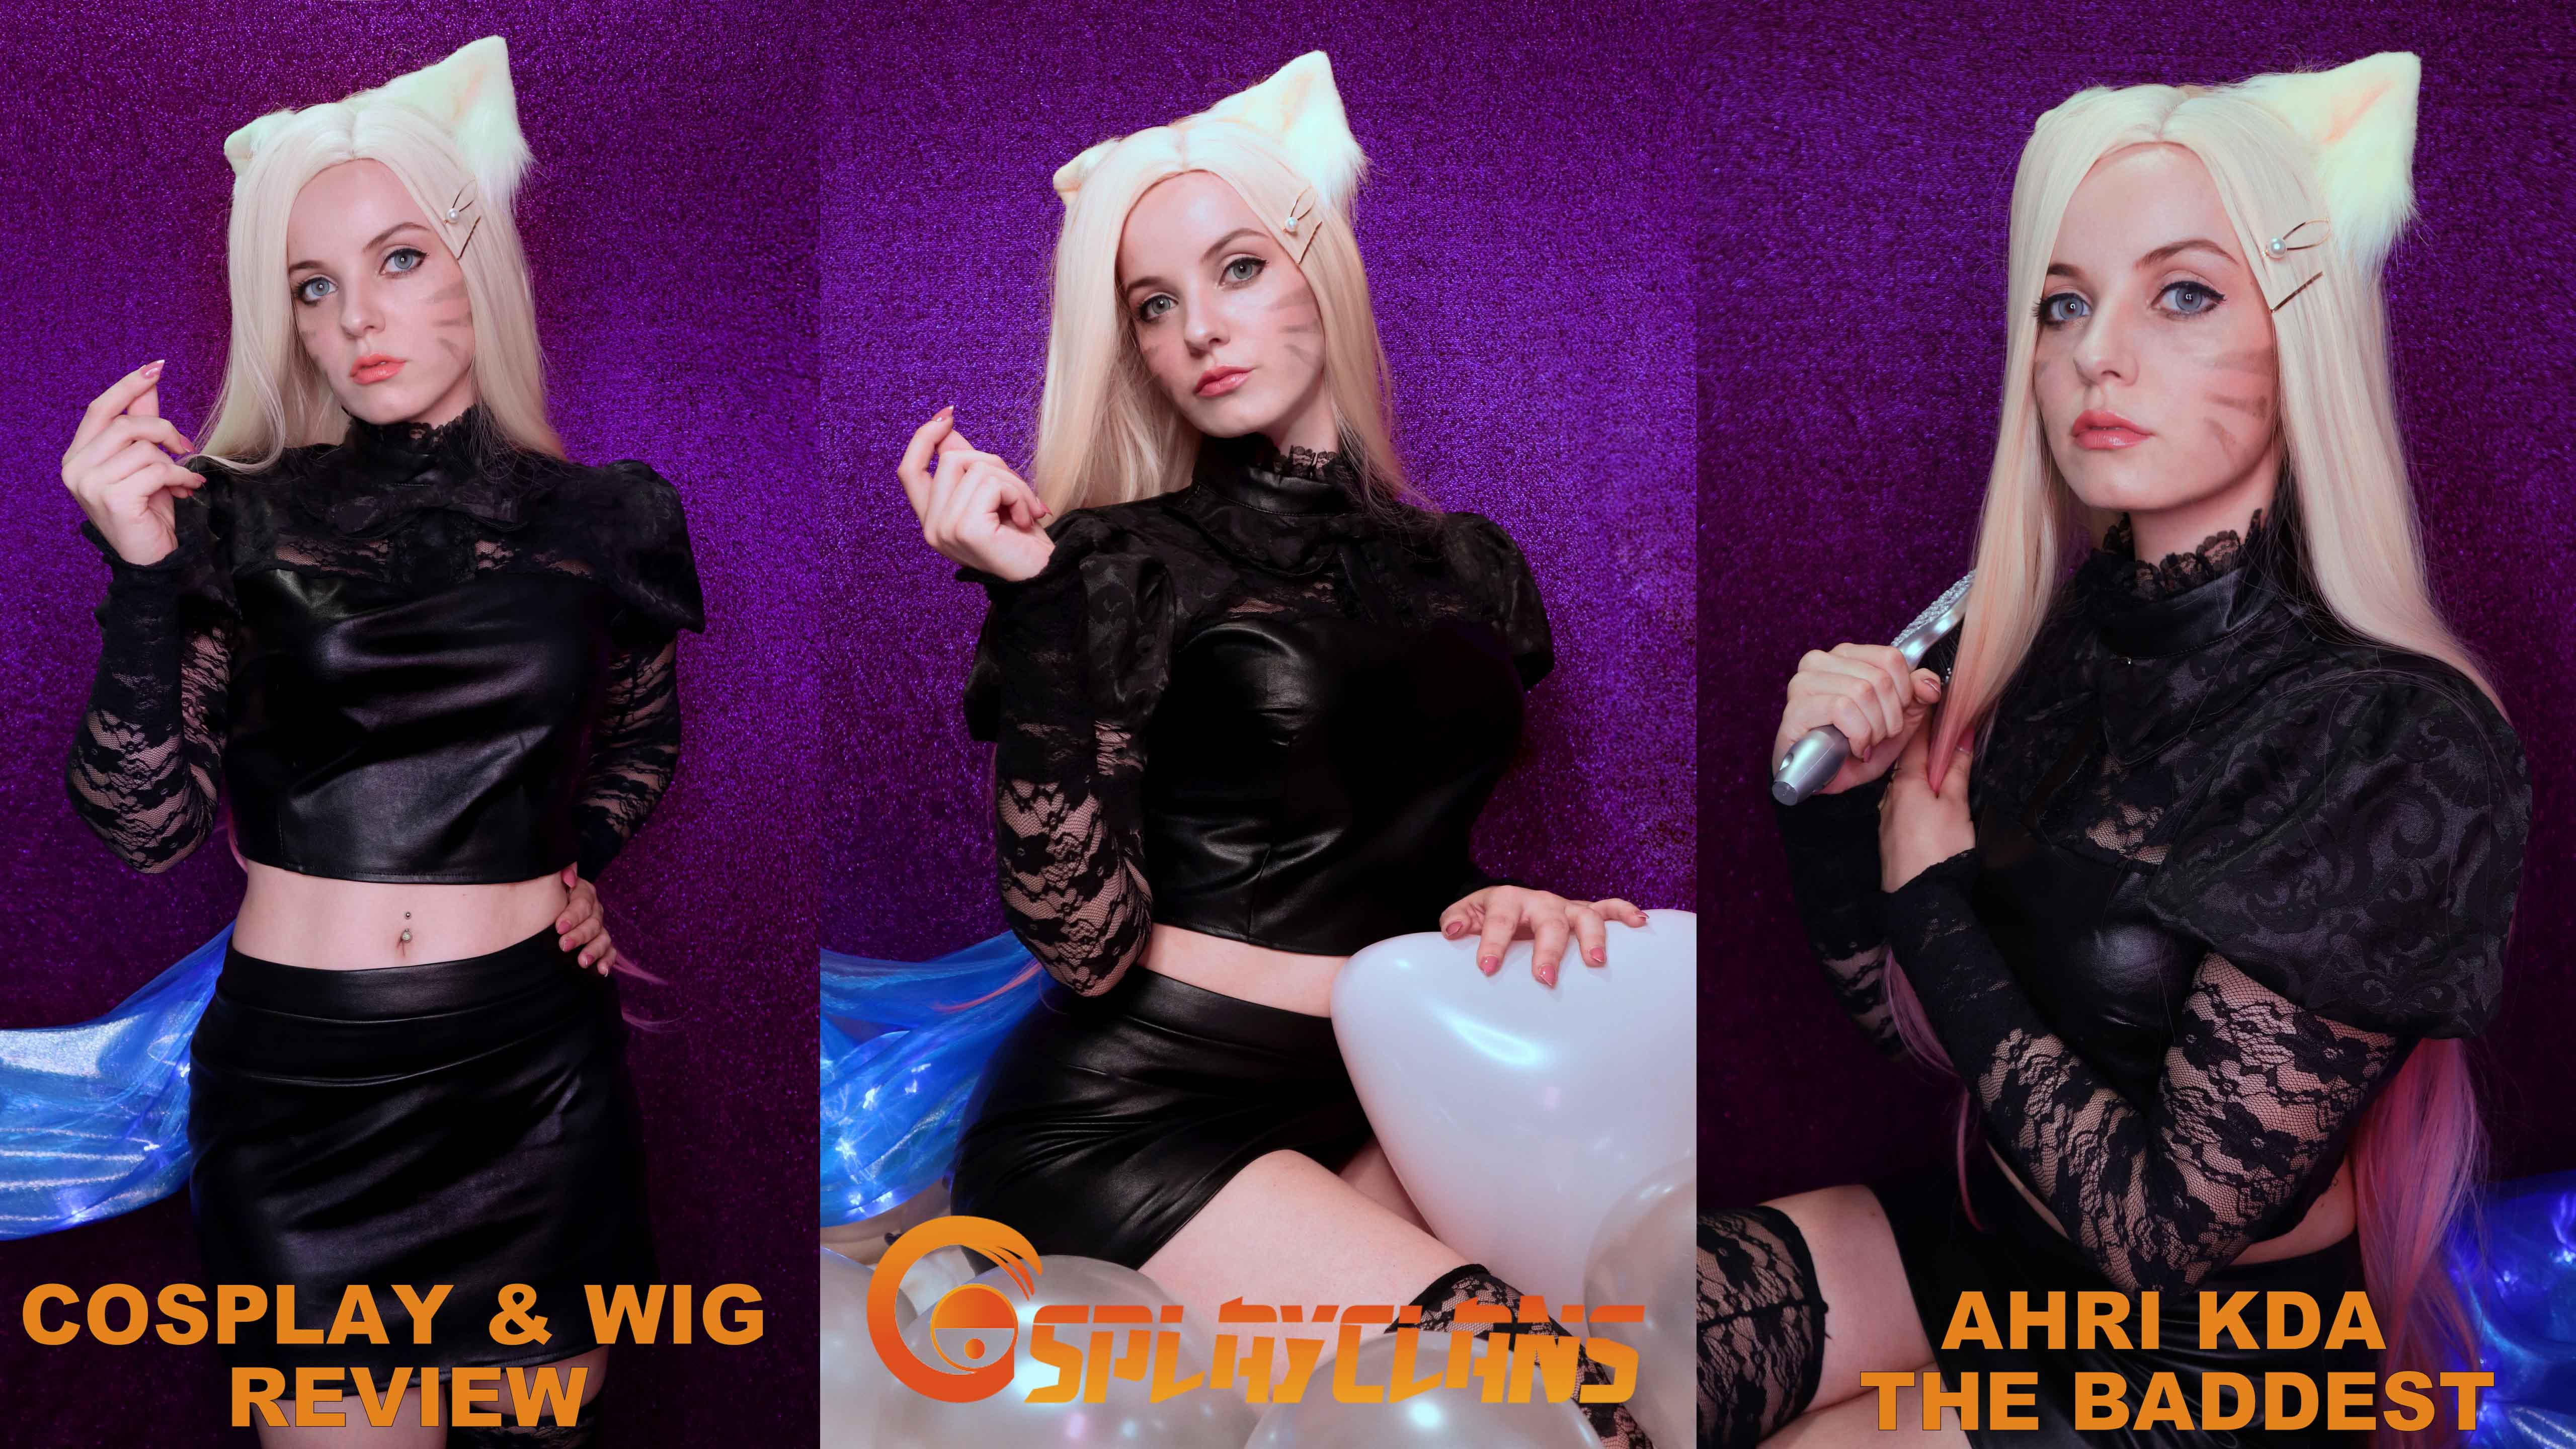 Cosplay & Wig review: Ahri KDA The Baddest from Cosplayclans